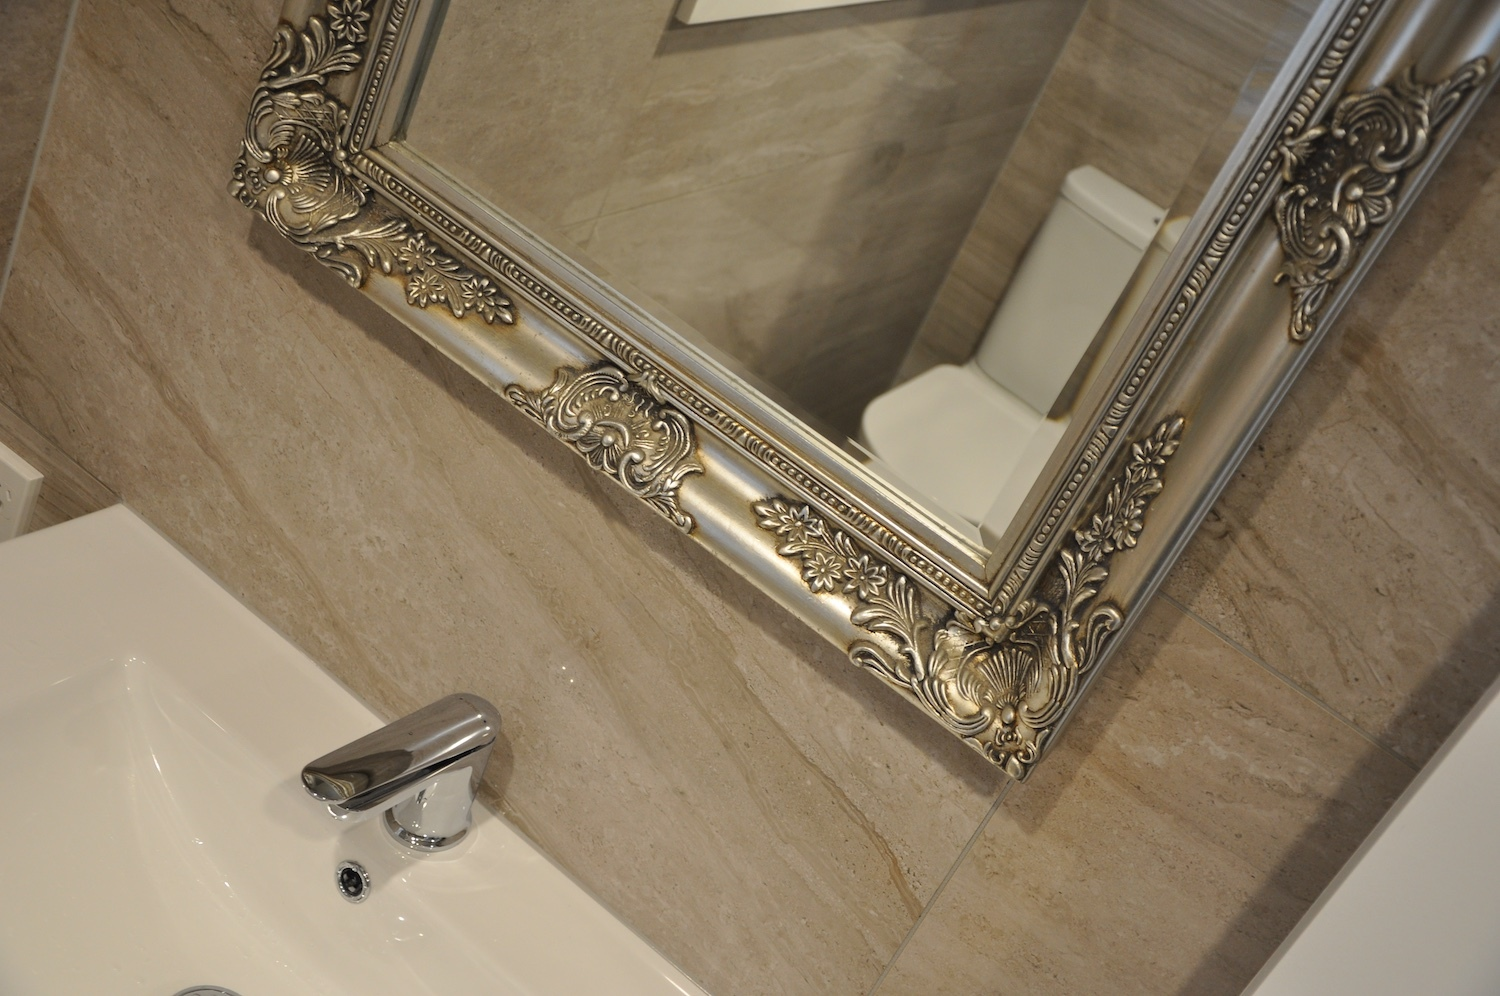 Ensuite basin mixer and mirror